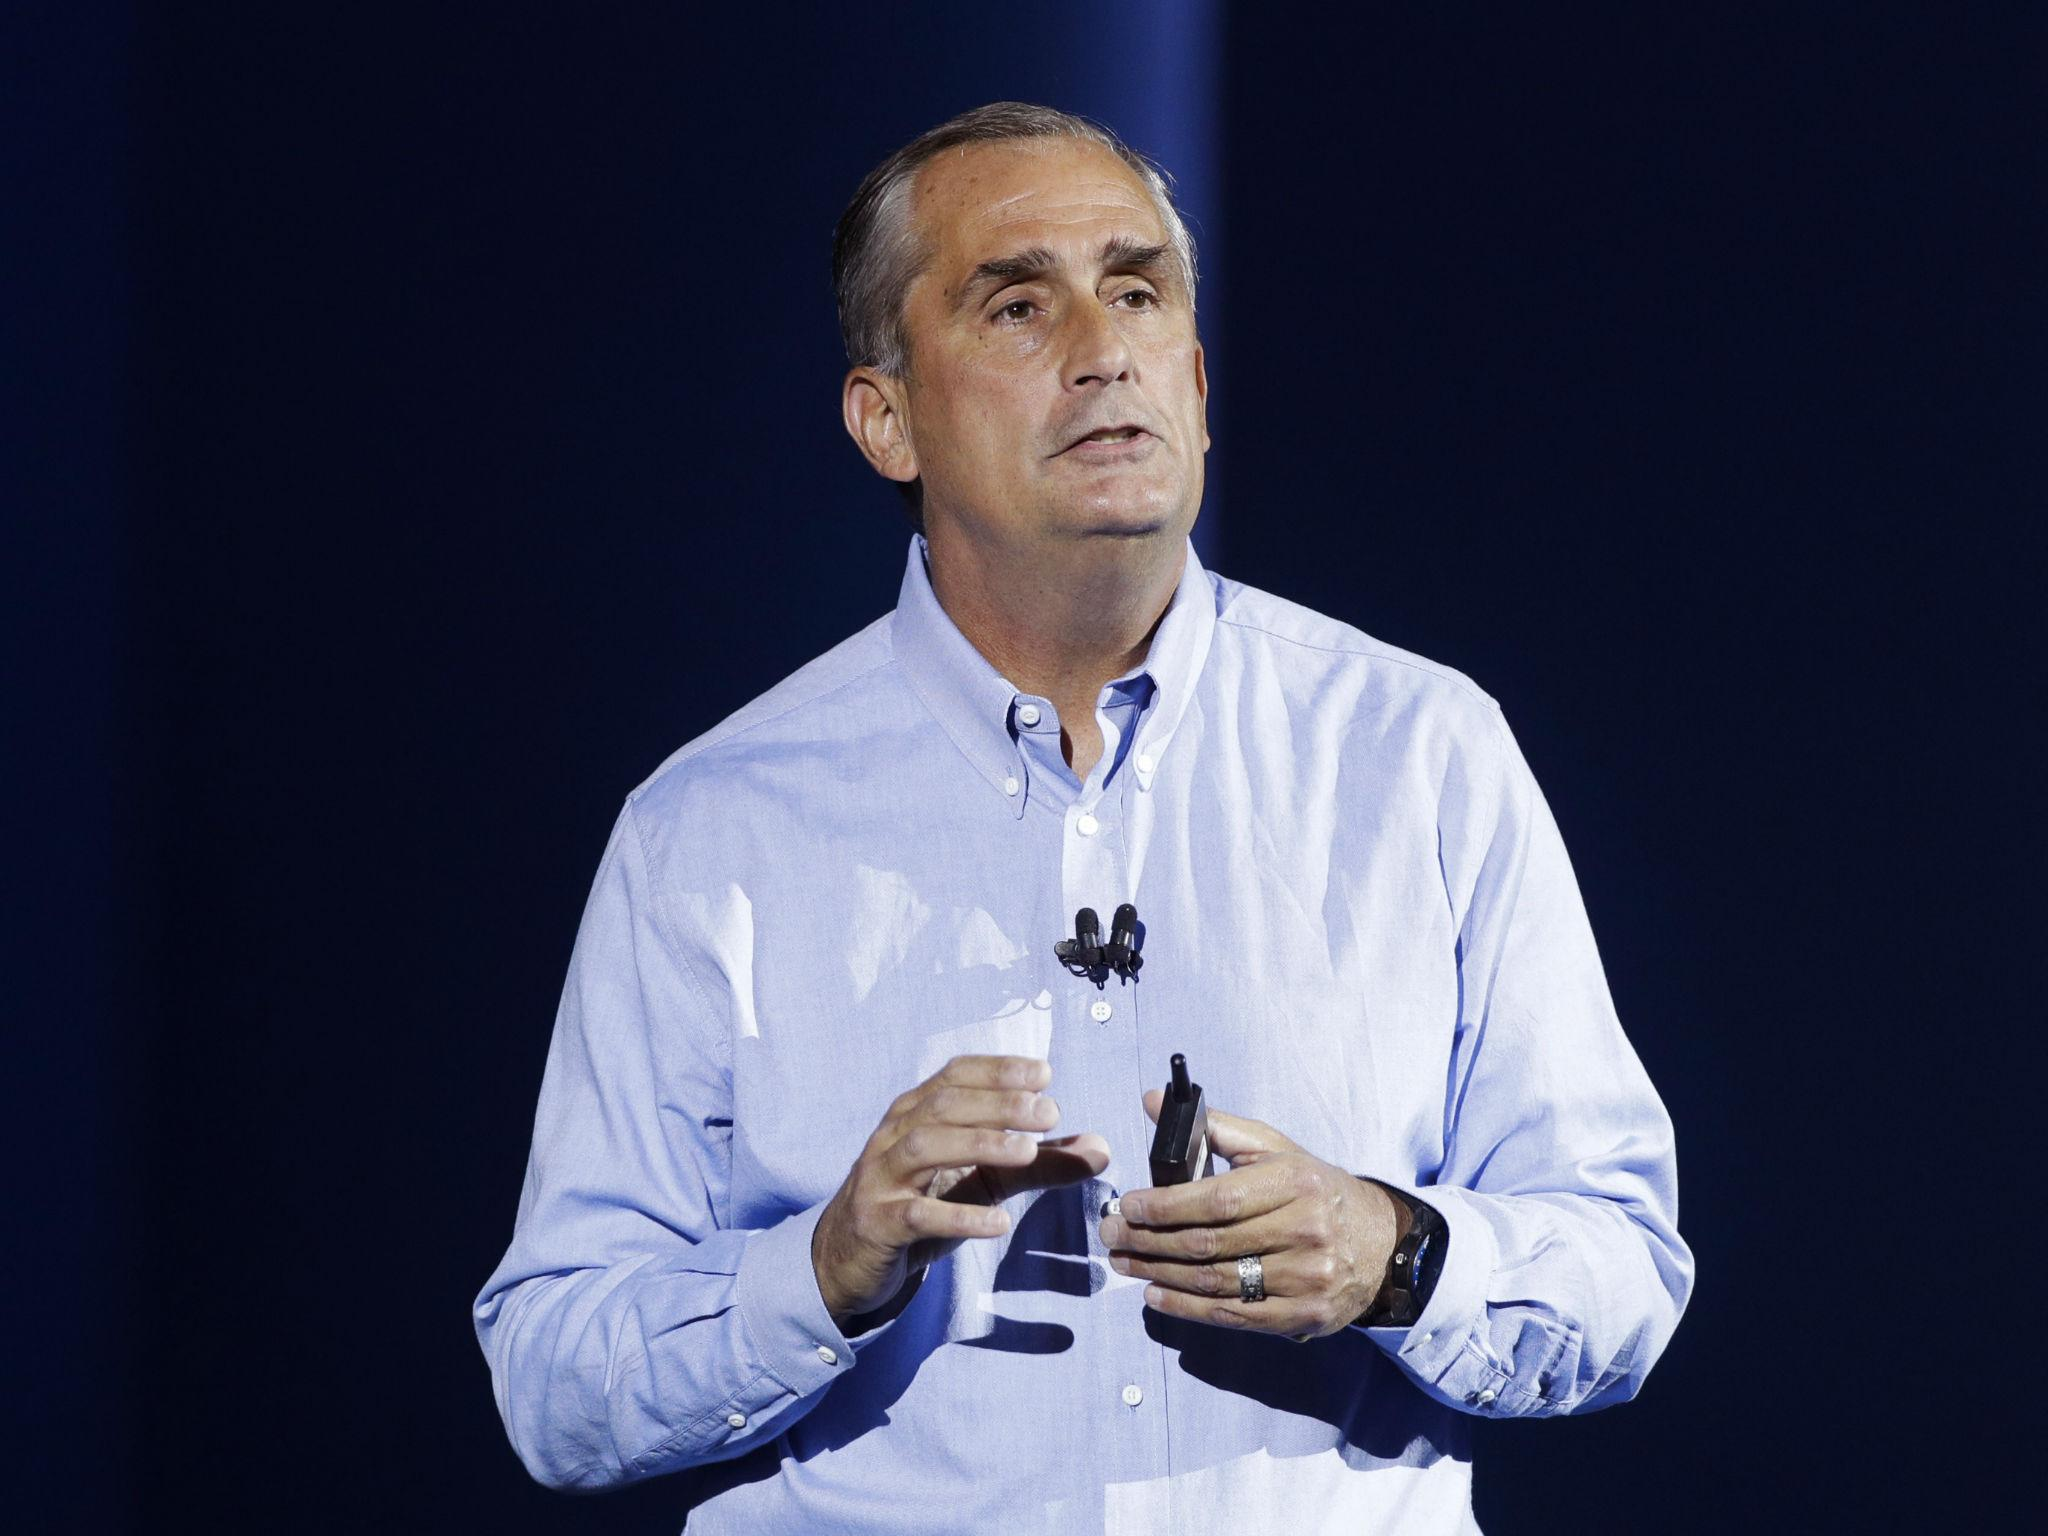 Intel CEO Brian Krzanich resigns over 'consensual relationship with employee'